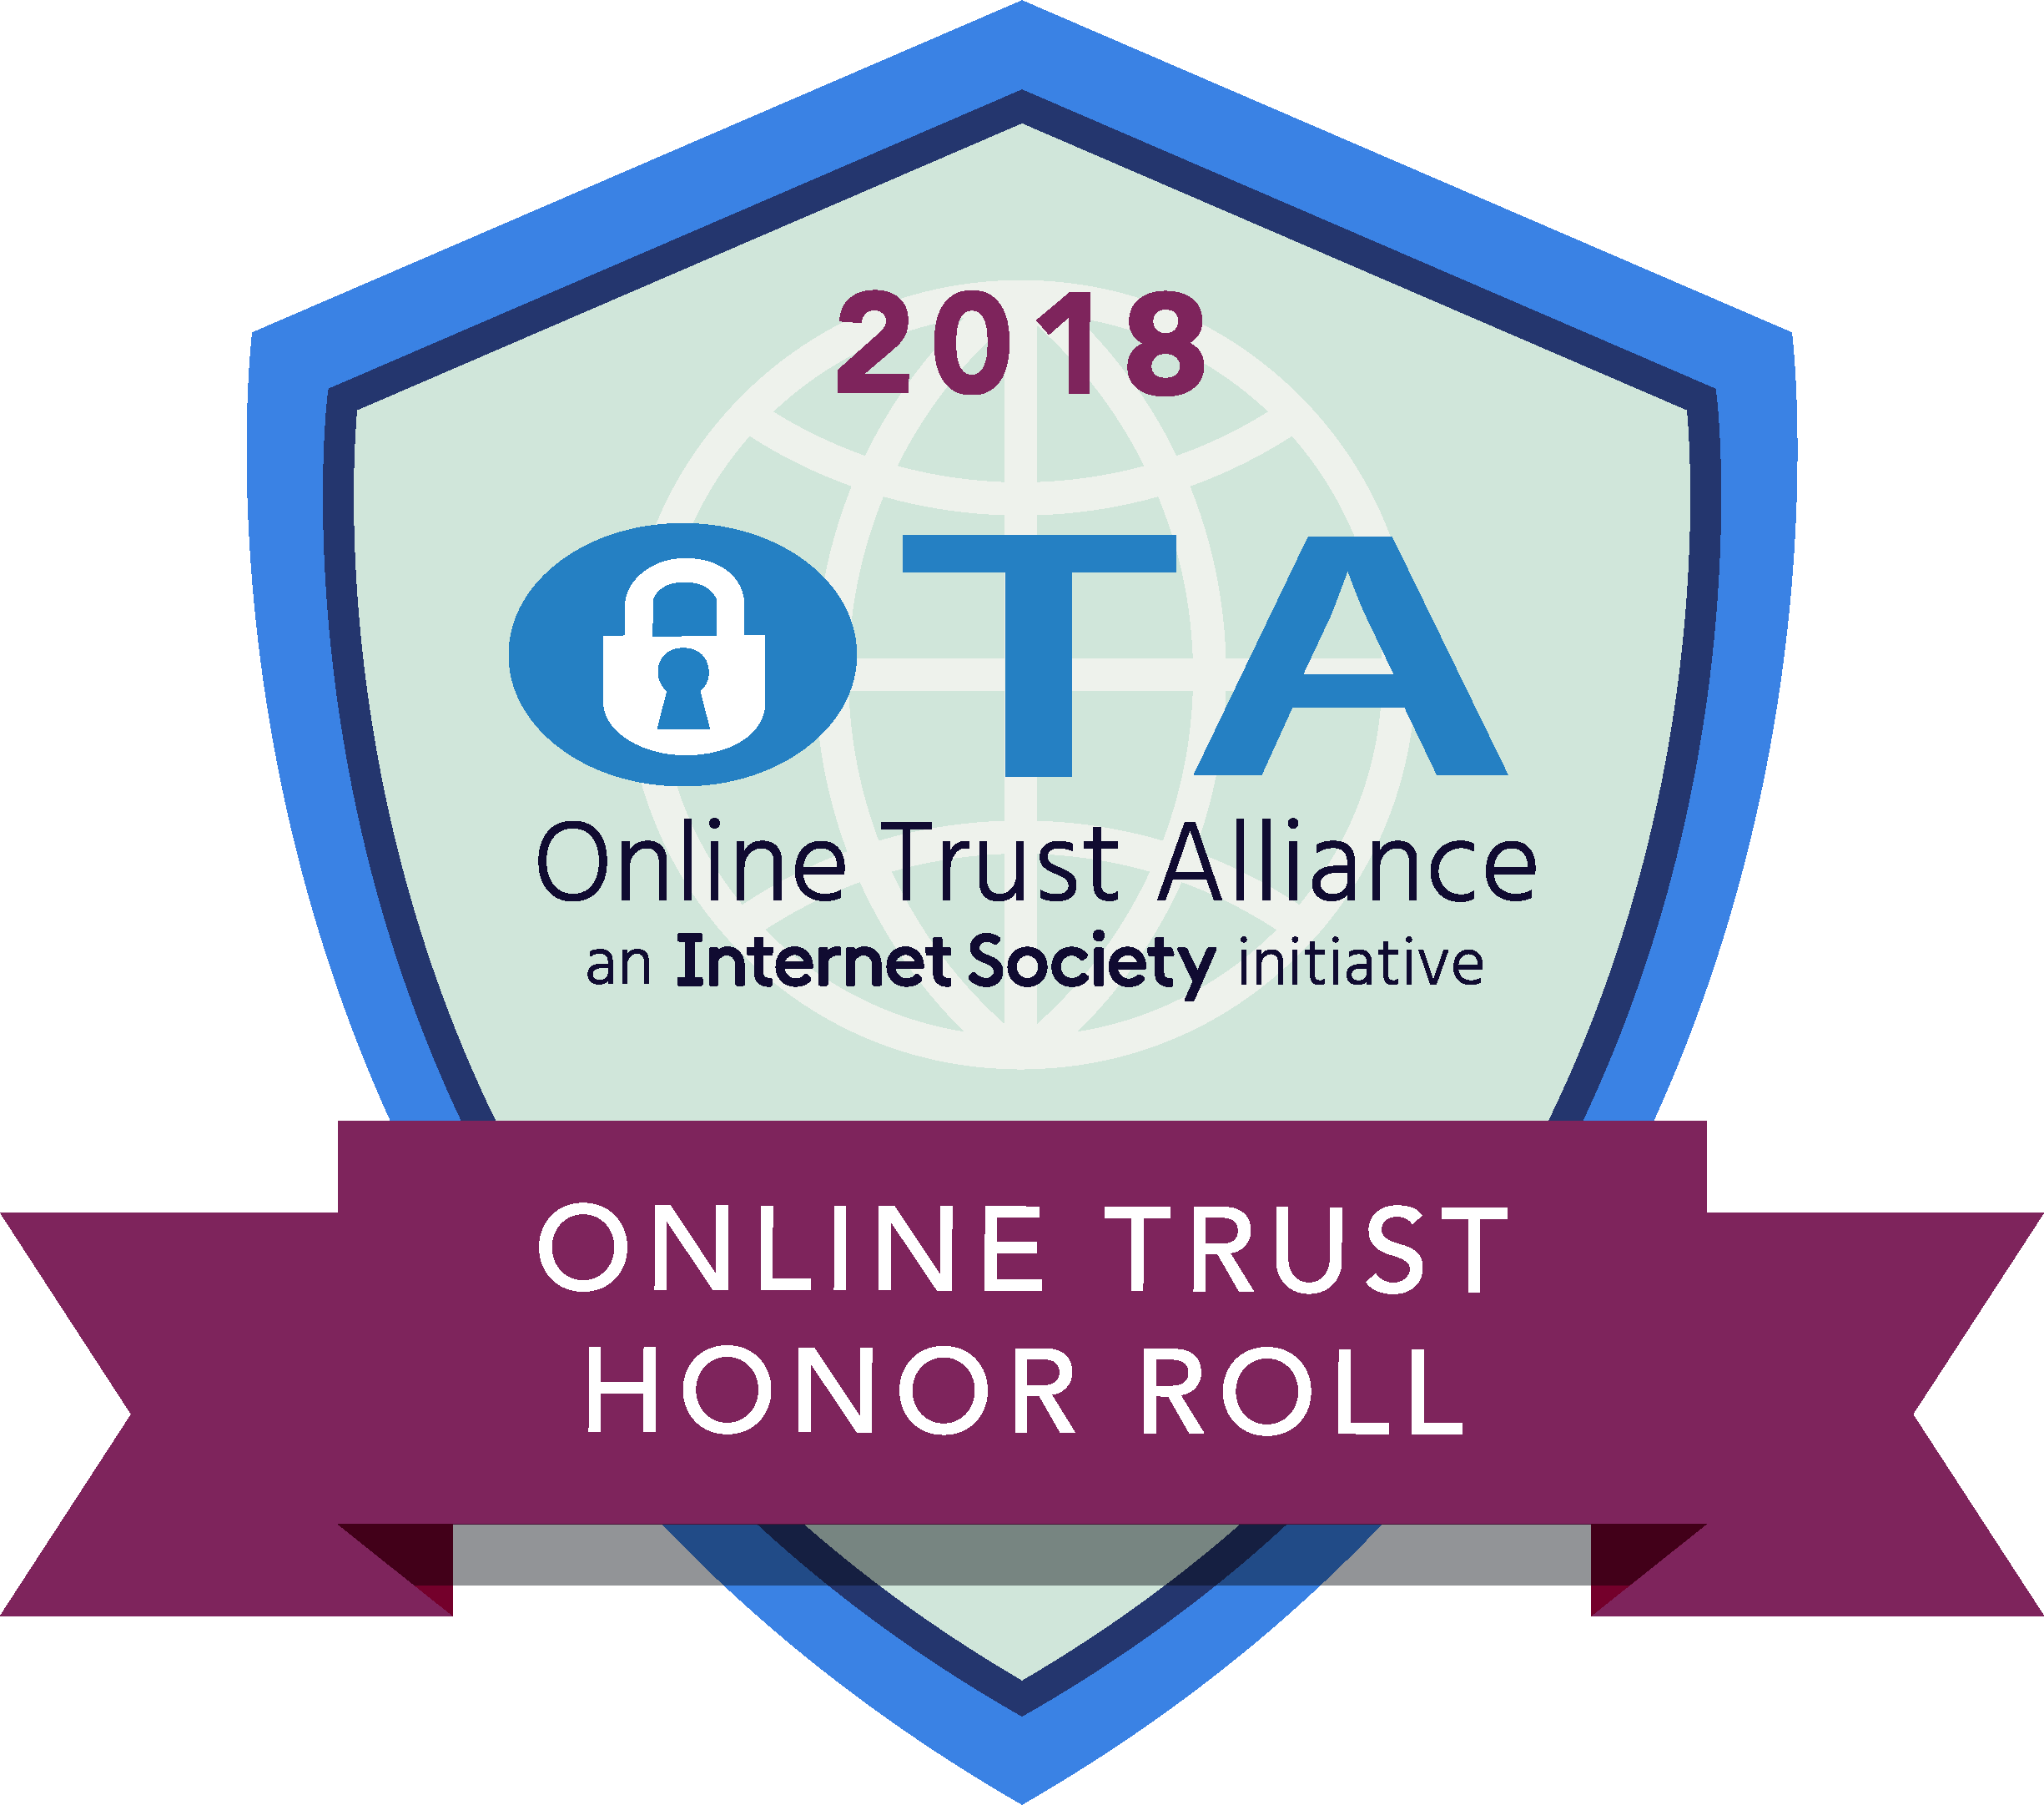 ota_honor_roll_2018